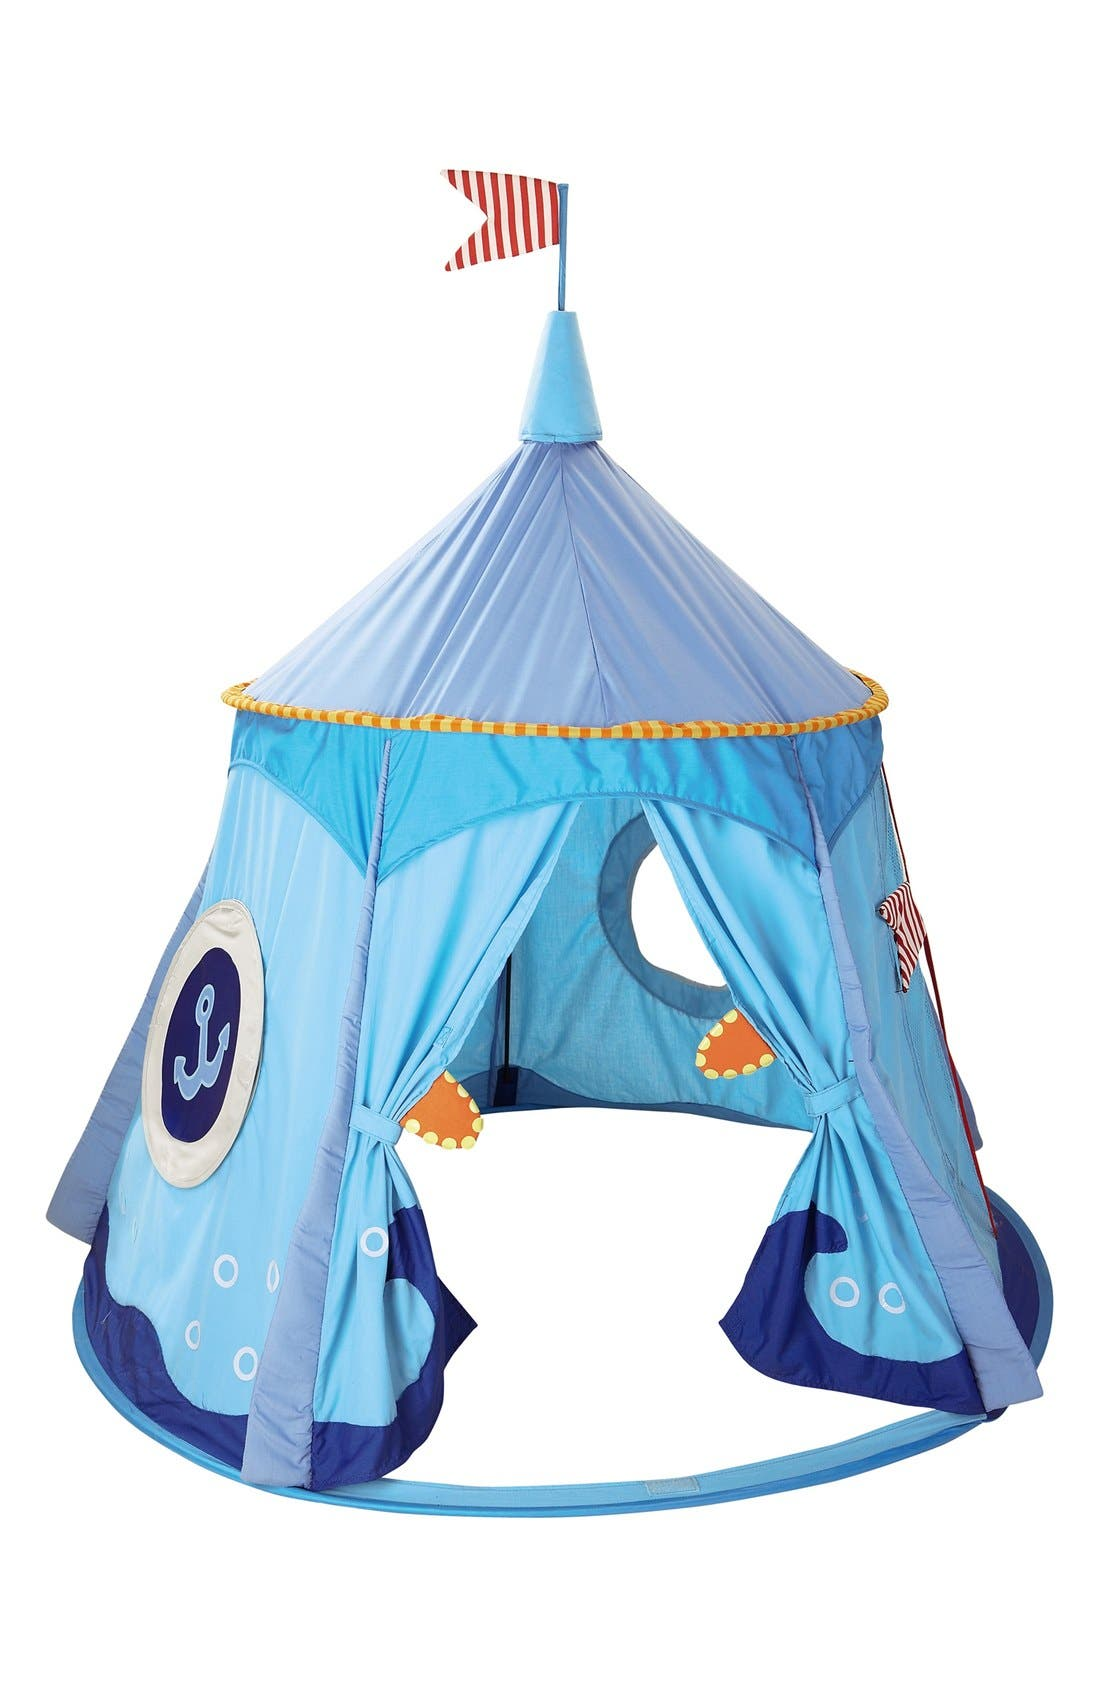 'Pirate's Treasure' Play Tent,                         Main,                         color, BLUE